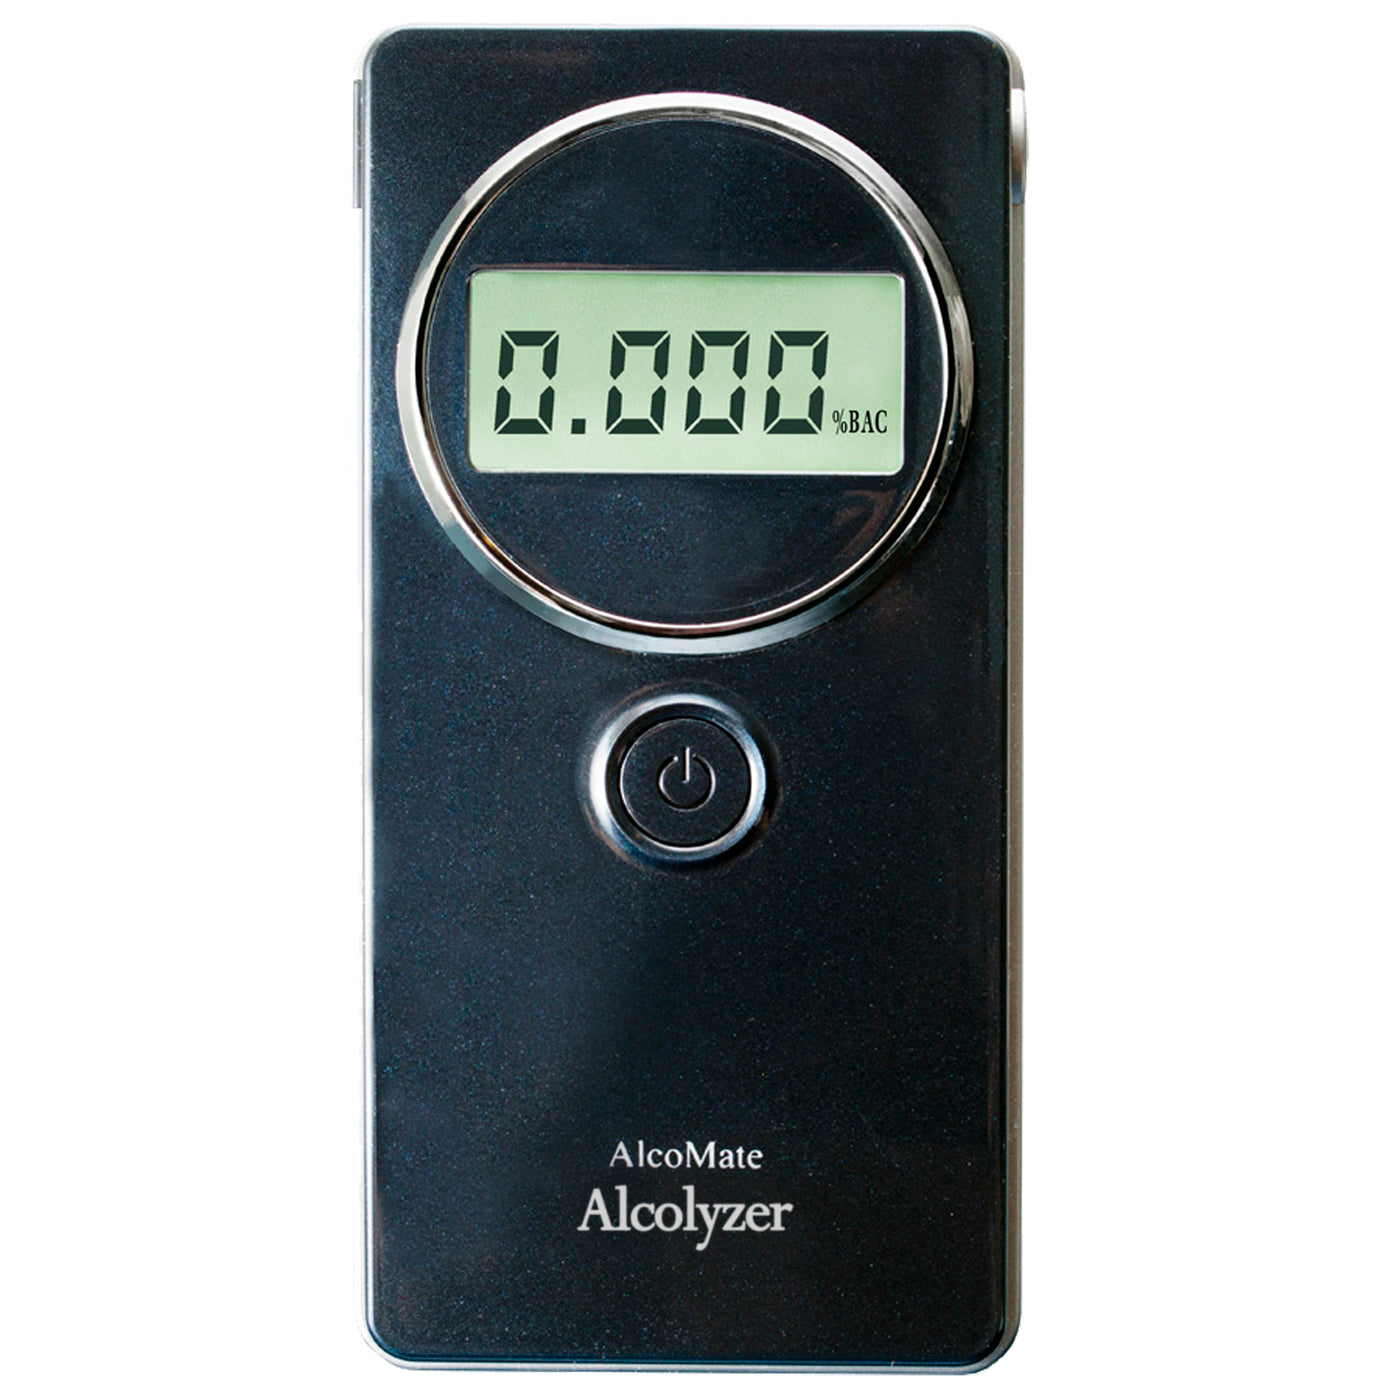 AlcoMate Alcolyzer (Model TS200) Professional Breathalyzer | Pre-Calibrated Fuel-Cell Sensor Module - AK GlobalTech Corporation